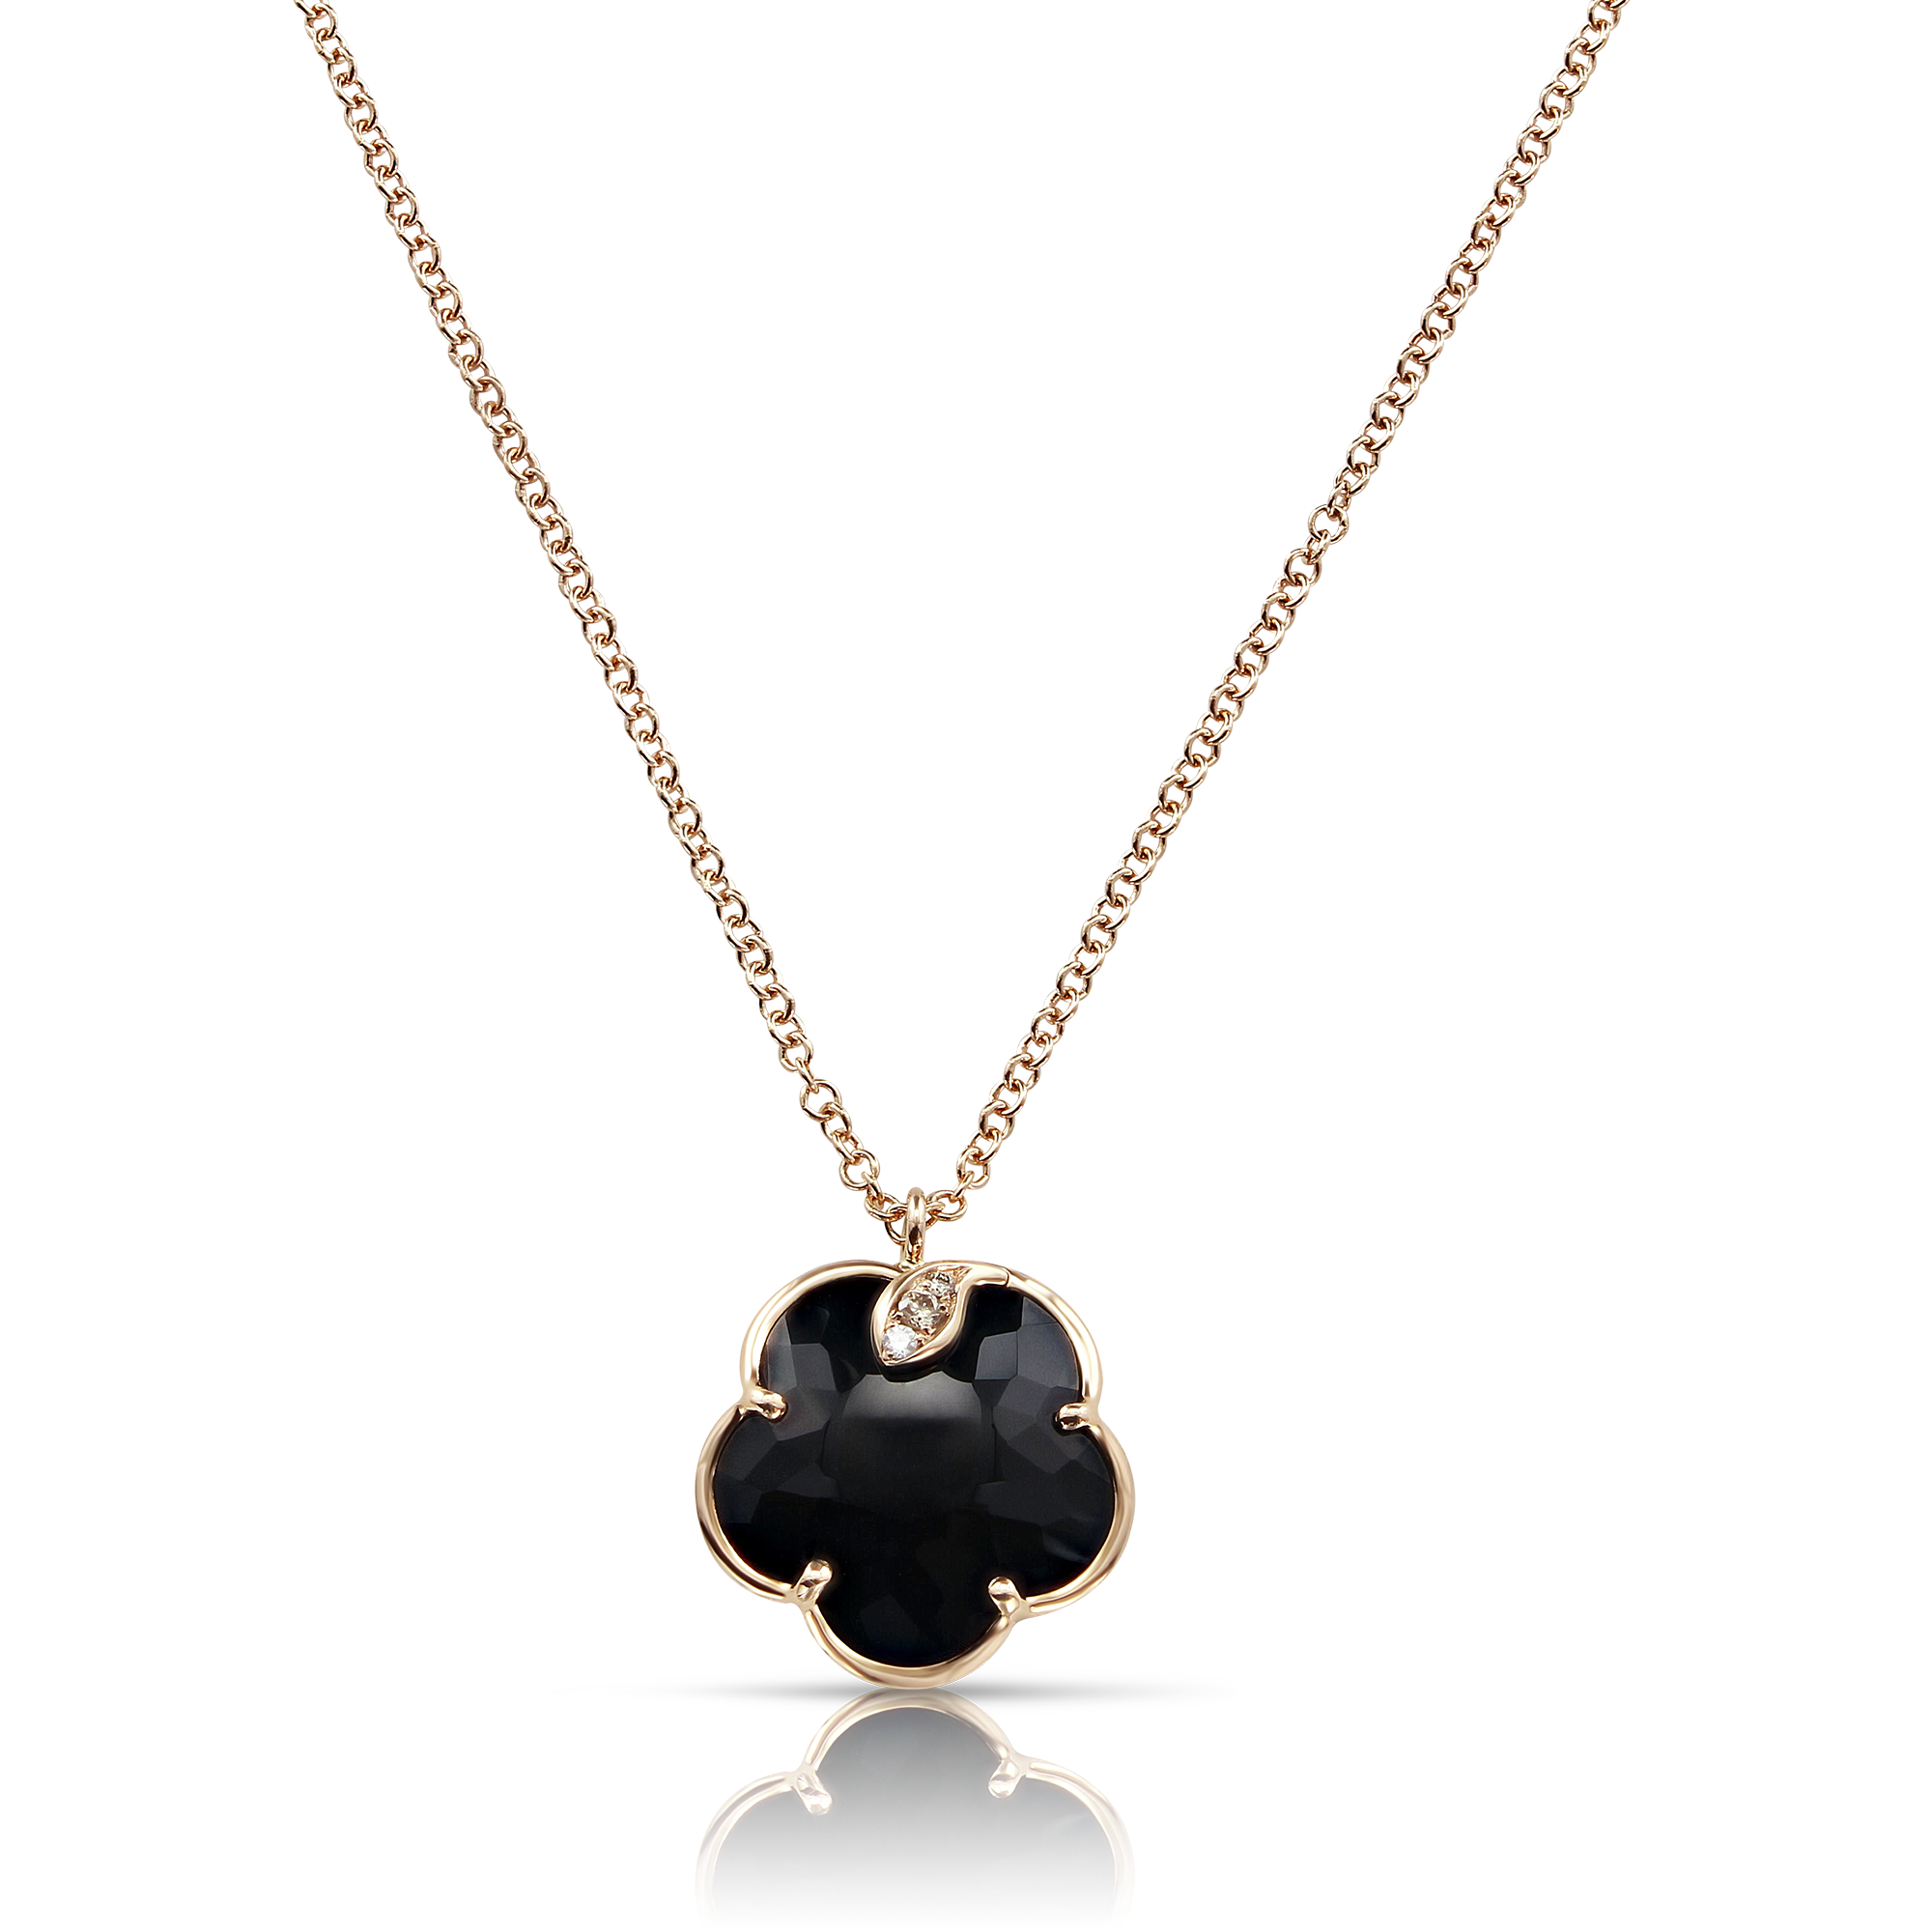 18k Rose Gold Petit Joli Necklace with Onyx, White and Champagne Diamonds